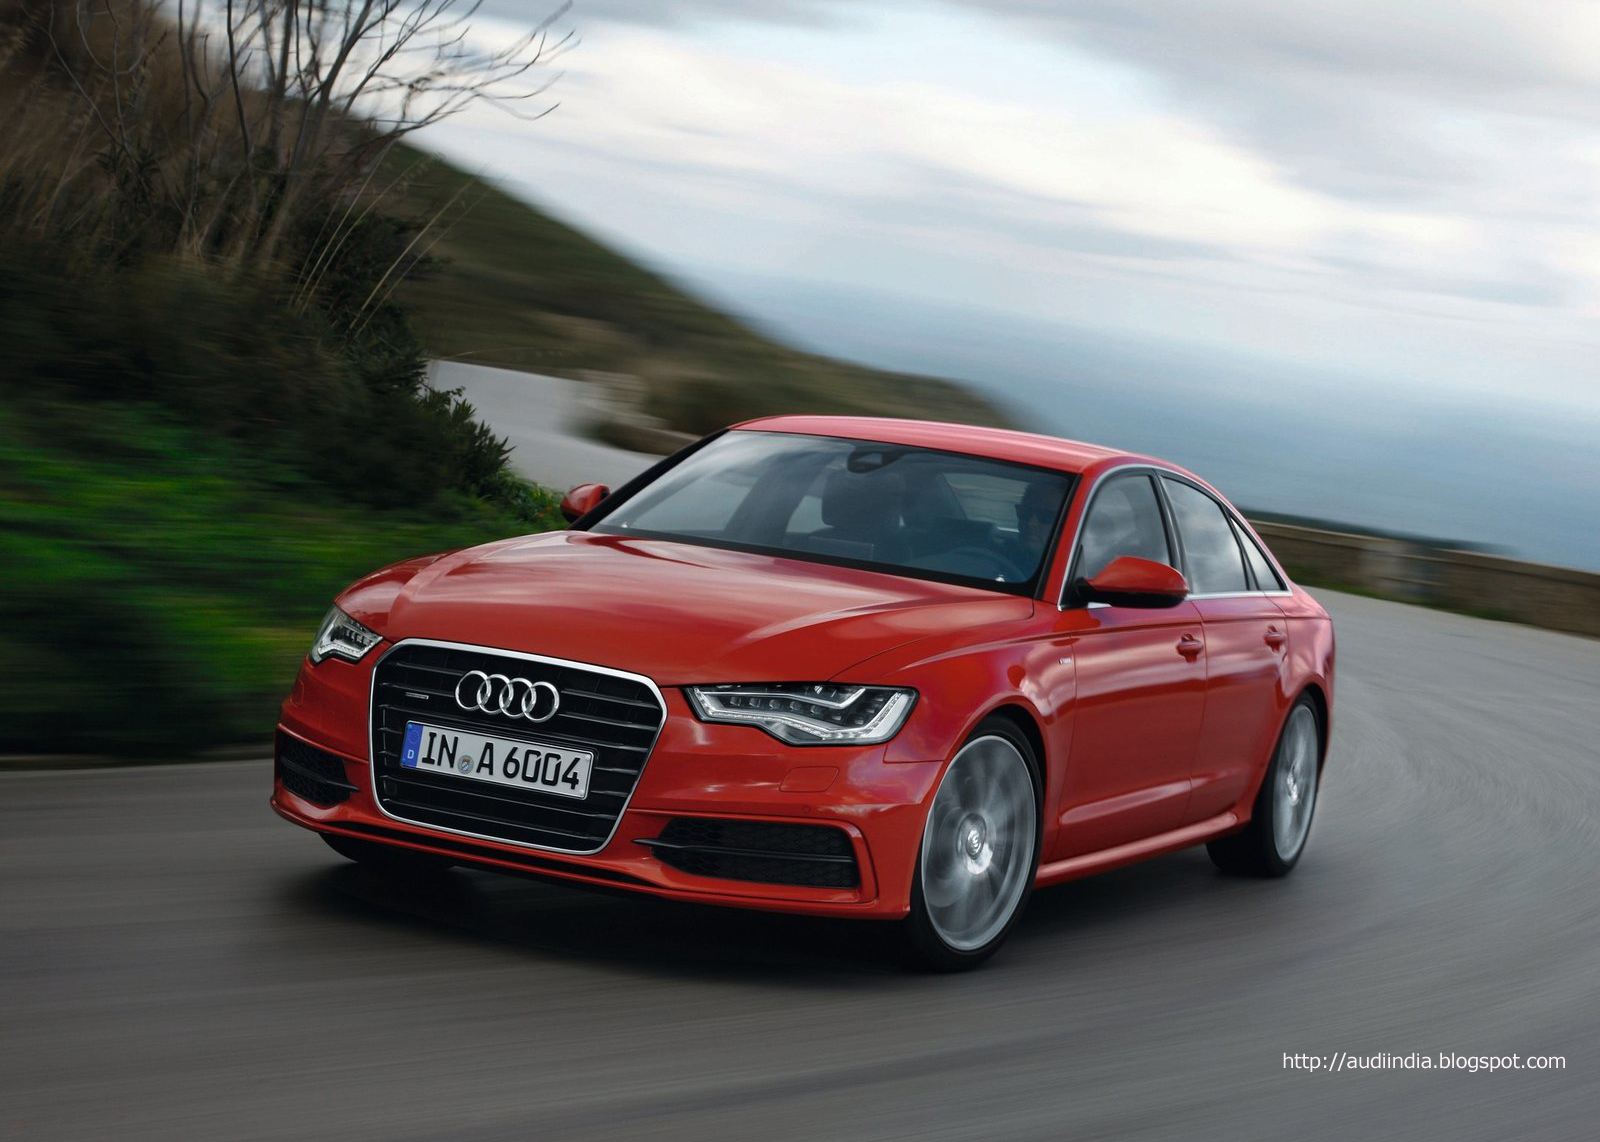 2011 2012 audi a6 wallpapers the world of audi. Black Bedroom Furniture Sets. Home Design Ideas